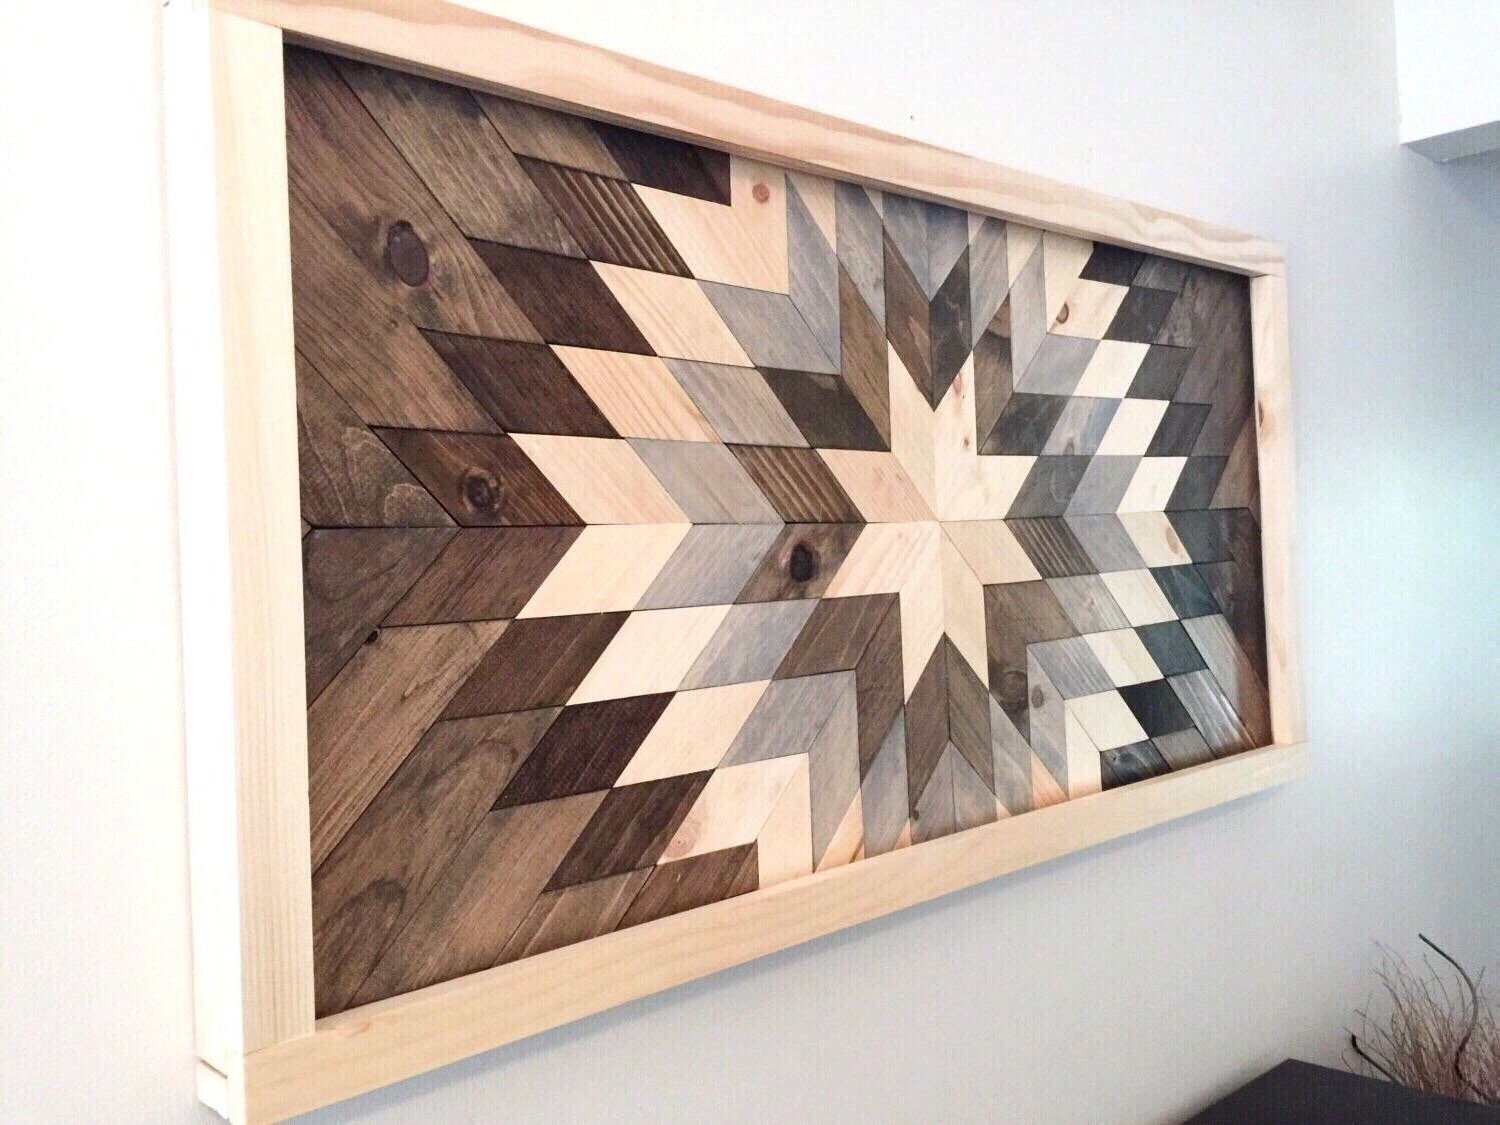 Wood Art Wall Throughout Most Recently Released Wood Art Wall Decor – Blogtipsworld (View 13 of 20)